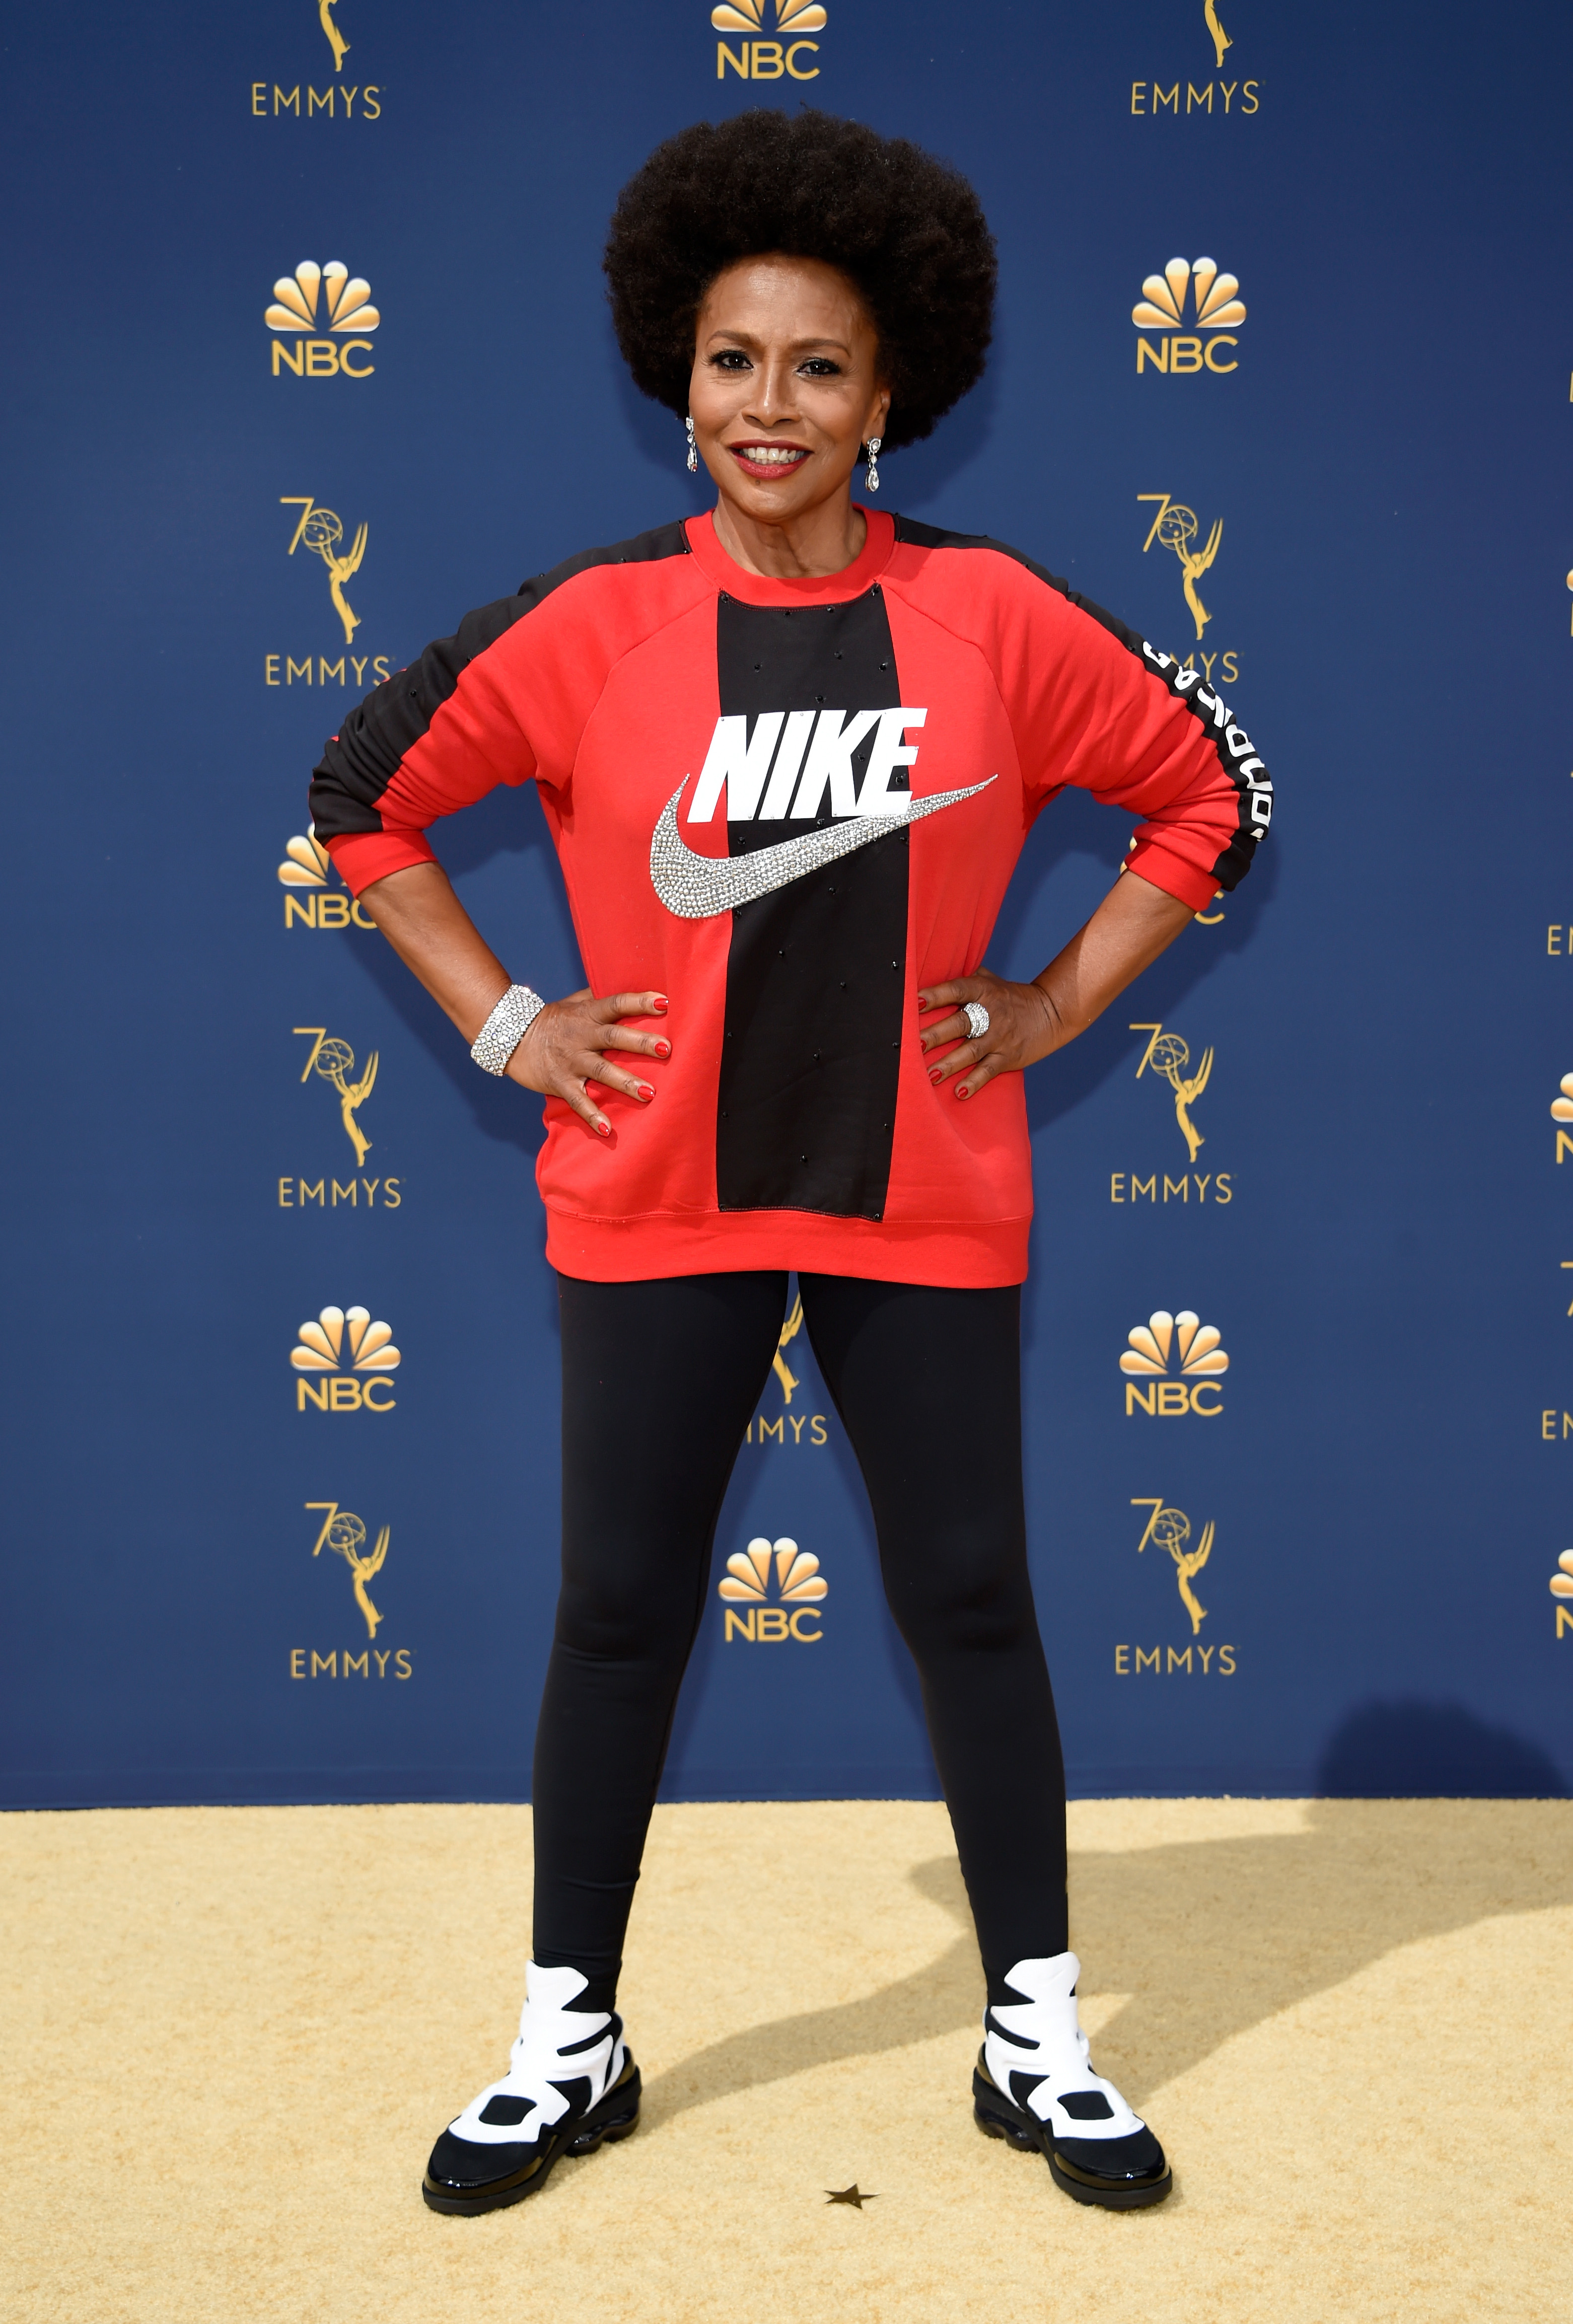 Jenifer Lewis attends the 70th Emmy Awards at Microsoft Theater on September 17, 2018 in Los Angeles, California.